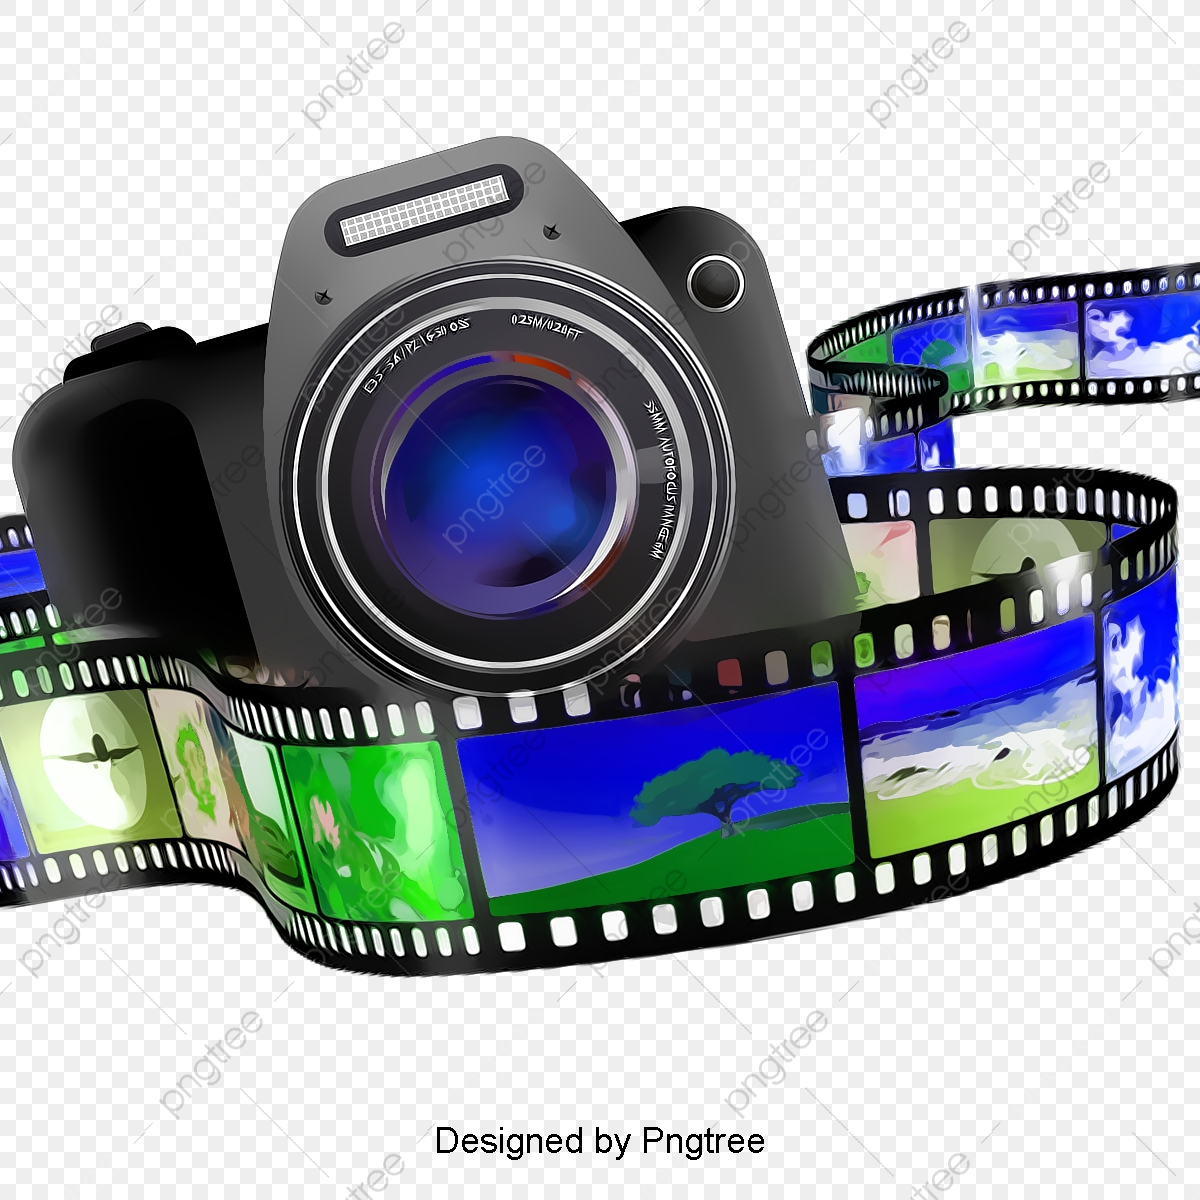 Photography Photography Clipart Camera Png Transparent Clipart Image And Psd File For Free Download